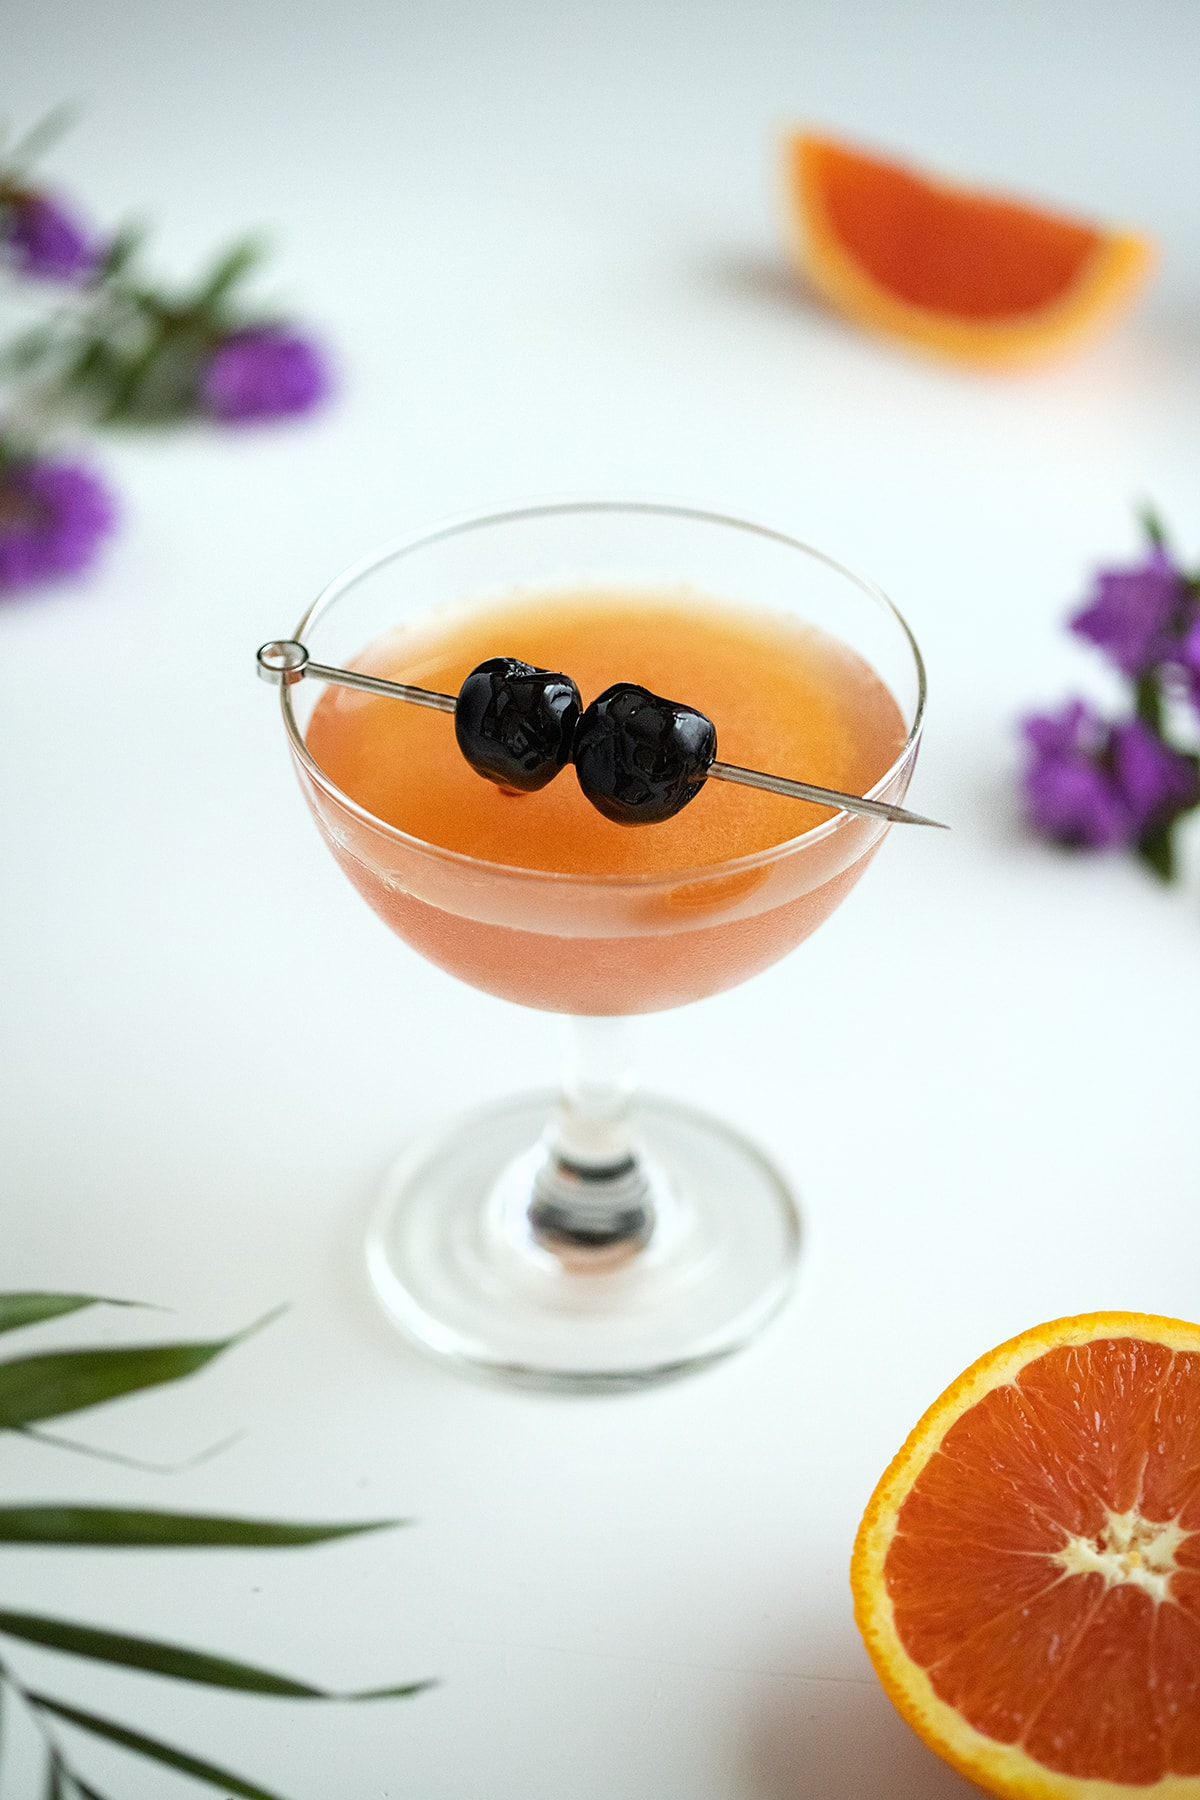 whiskey cocktail with two cherries in a coupe glass